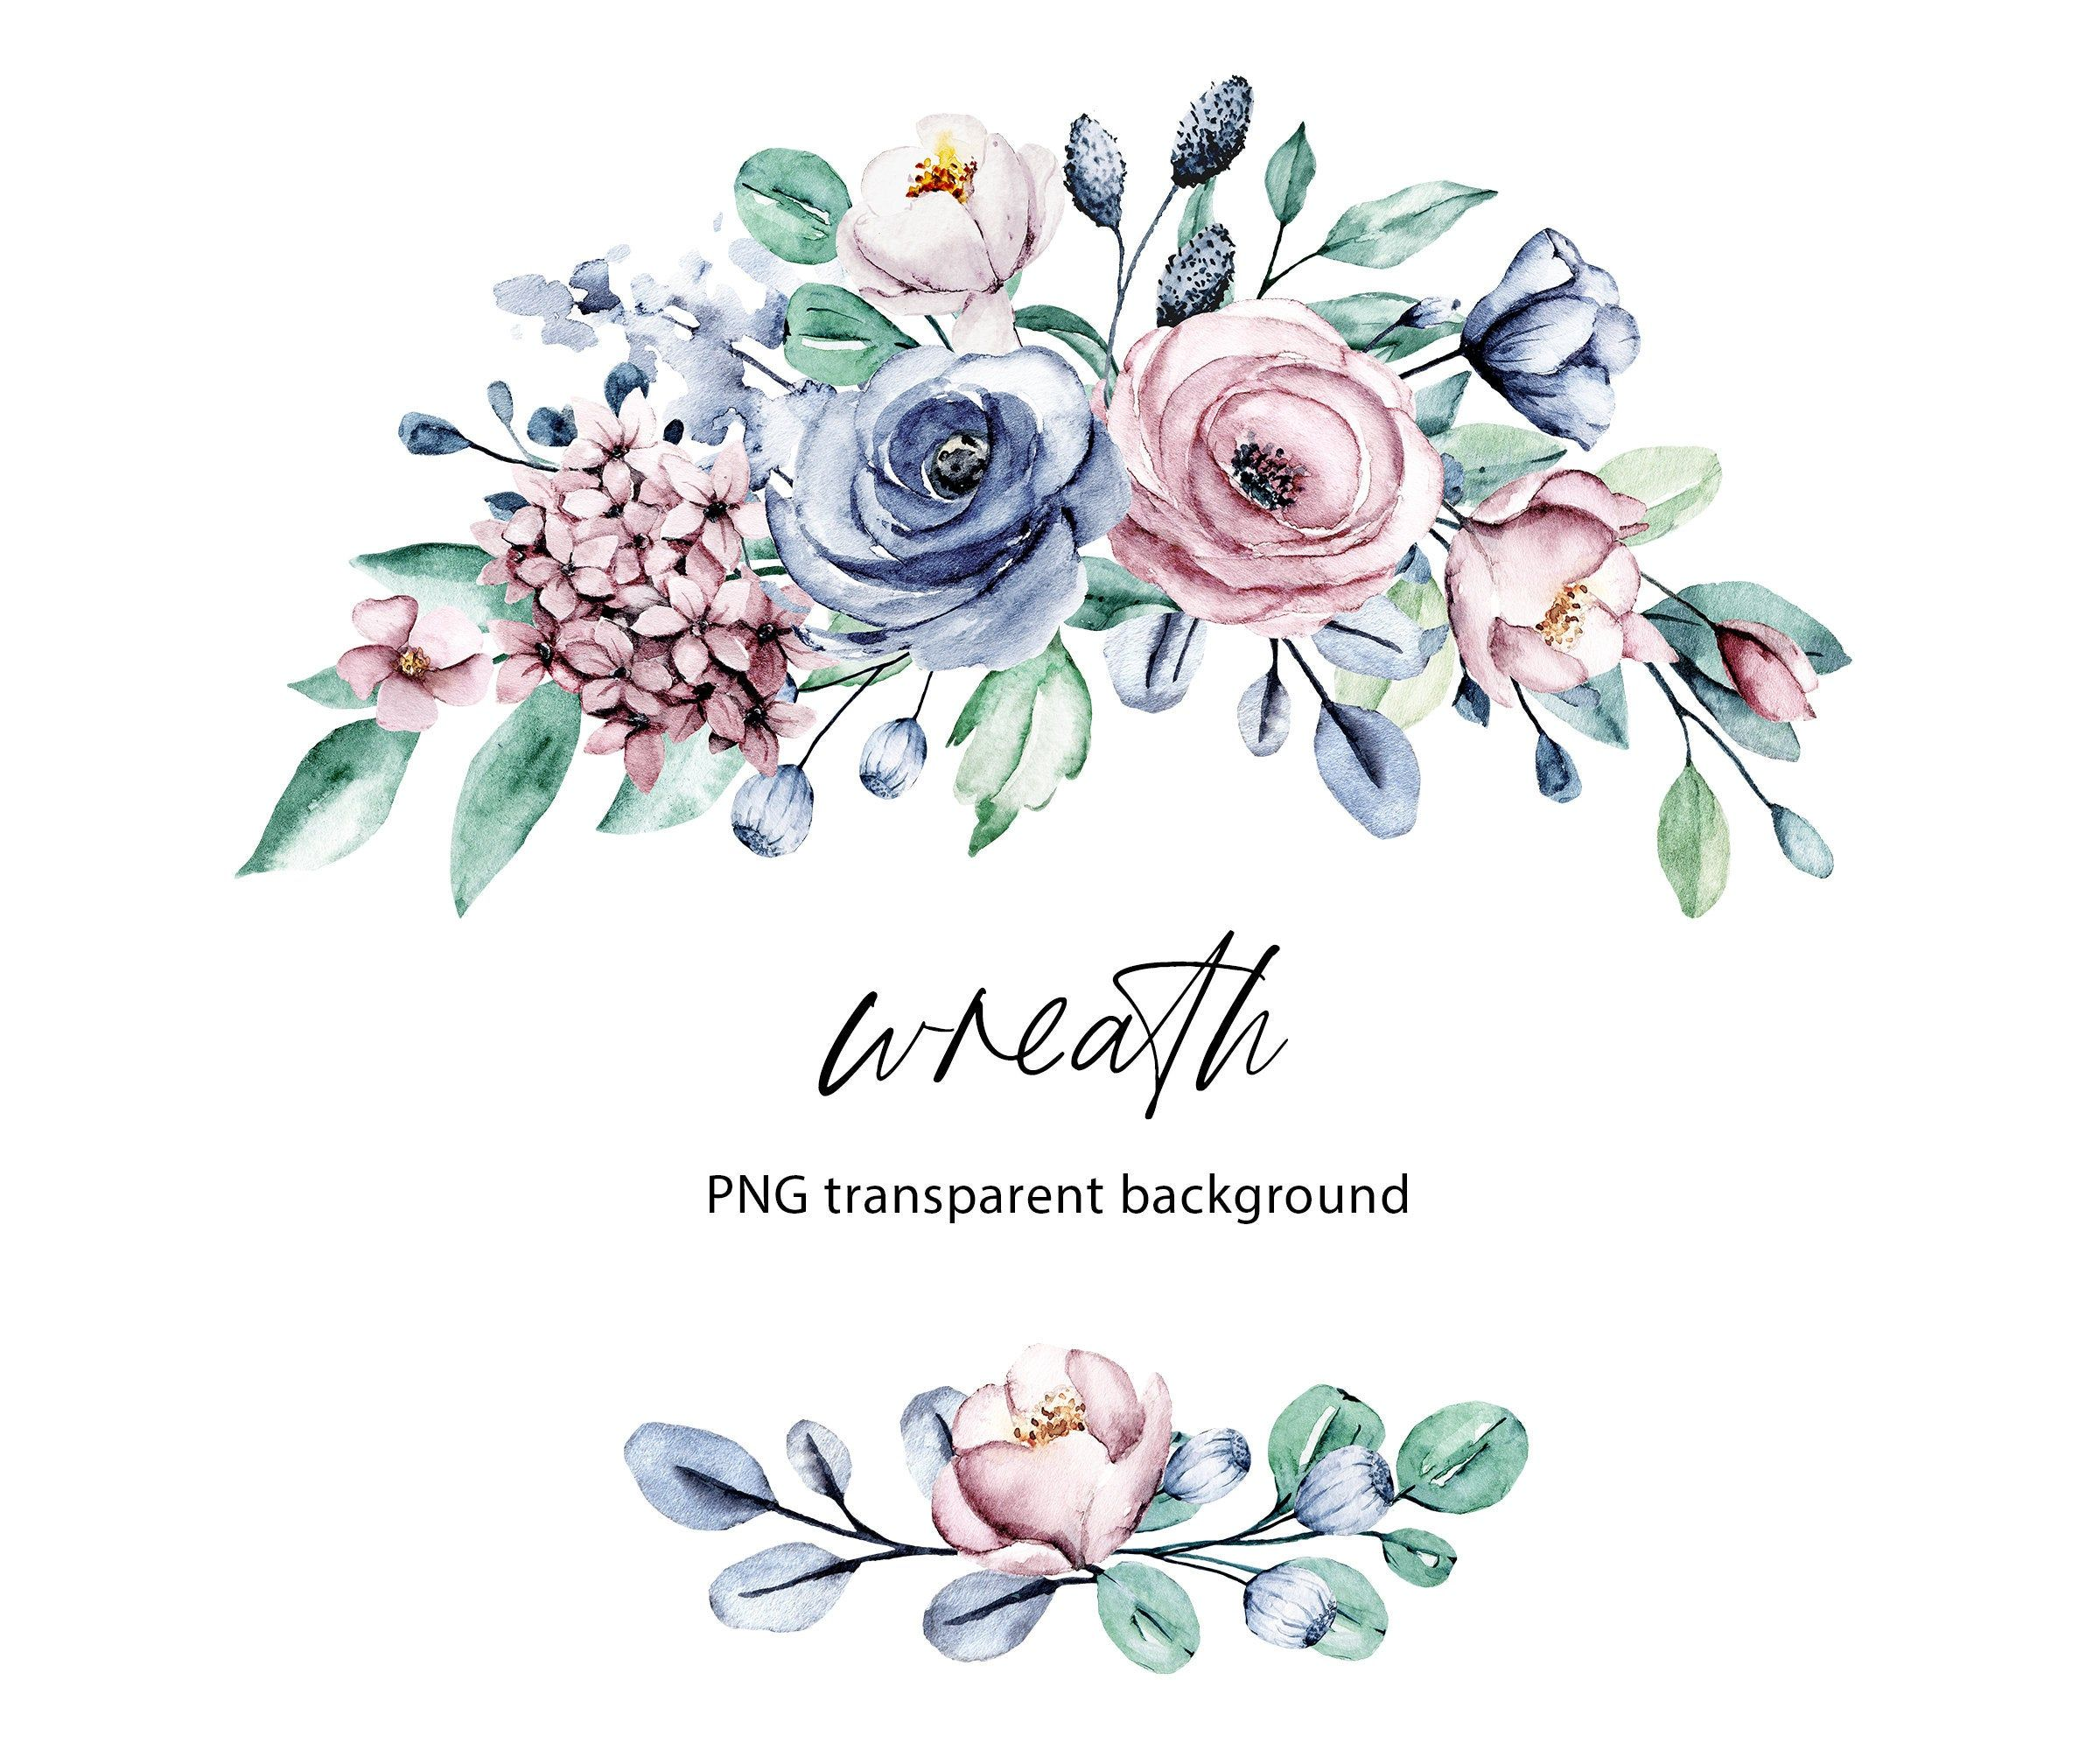 Watercolor Flowers Clipart Floral Frame With Dusty Pink And Etsy In 2021 Watercolor Flowers Clip Art Blue Roses